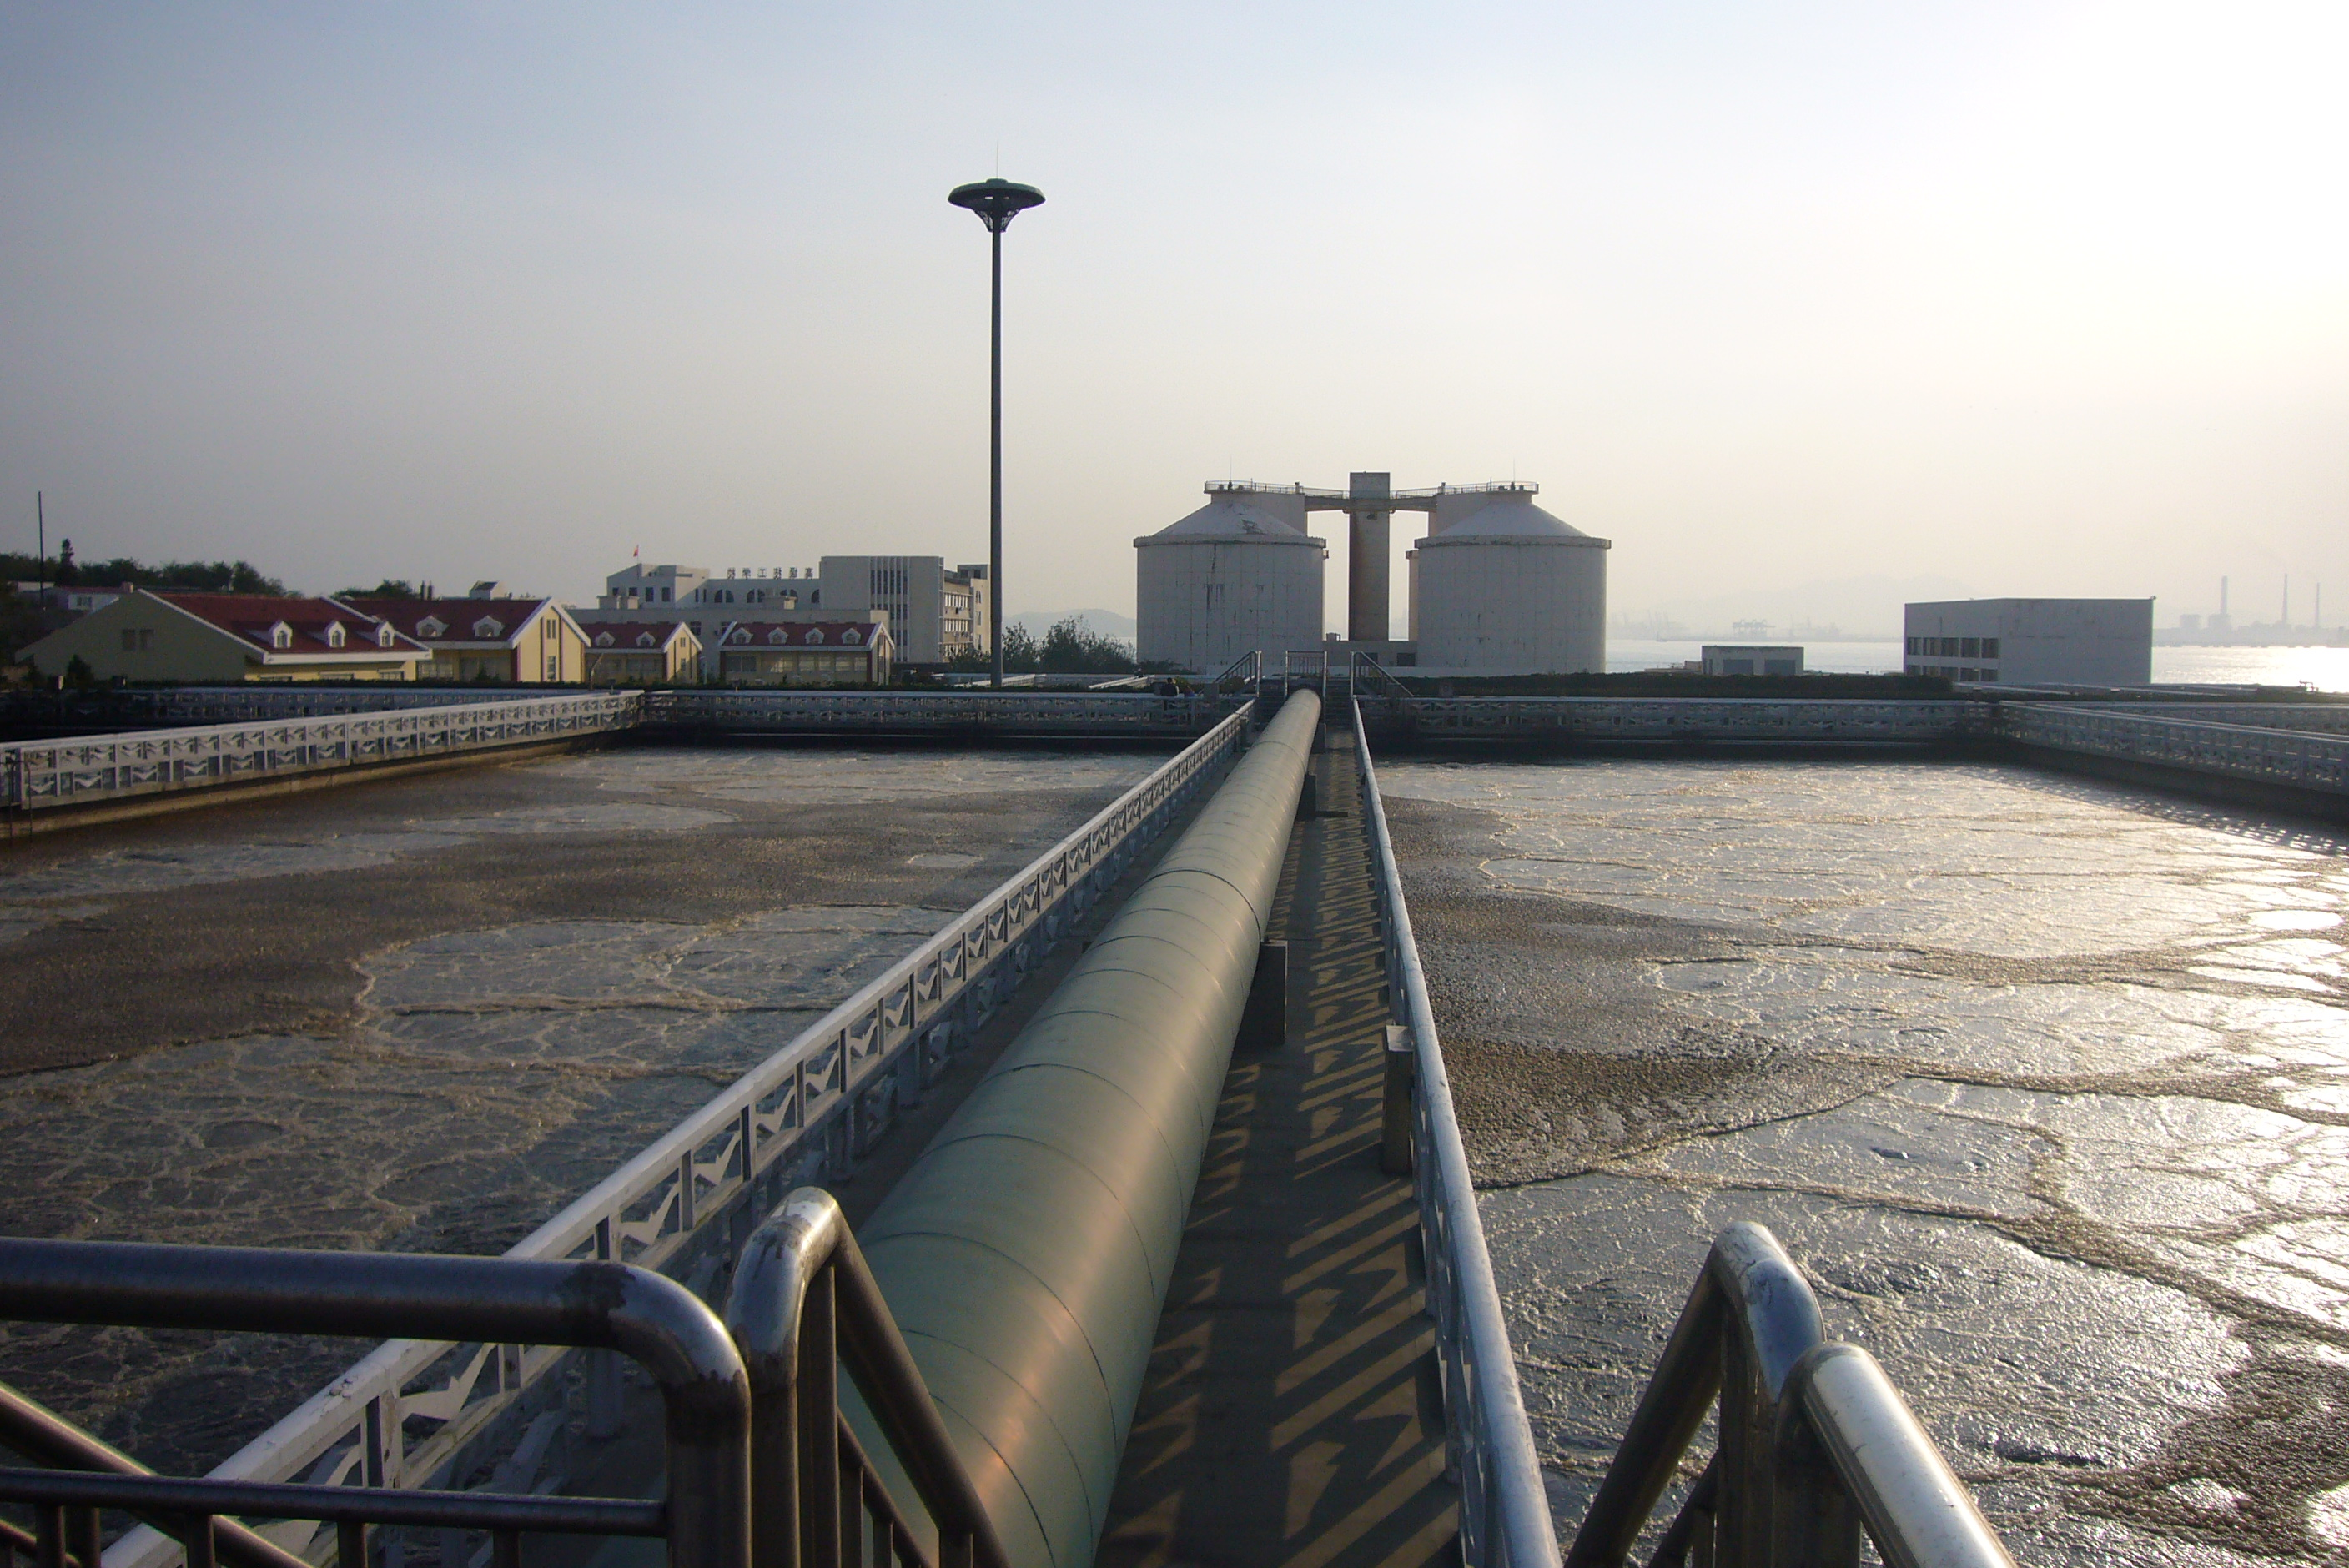 Aeration tank at WWTP in China (Photo credit: IWAR)